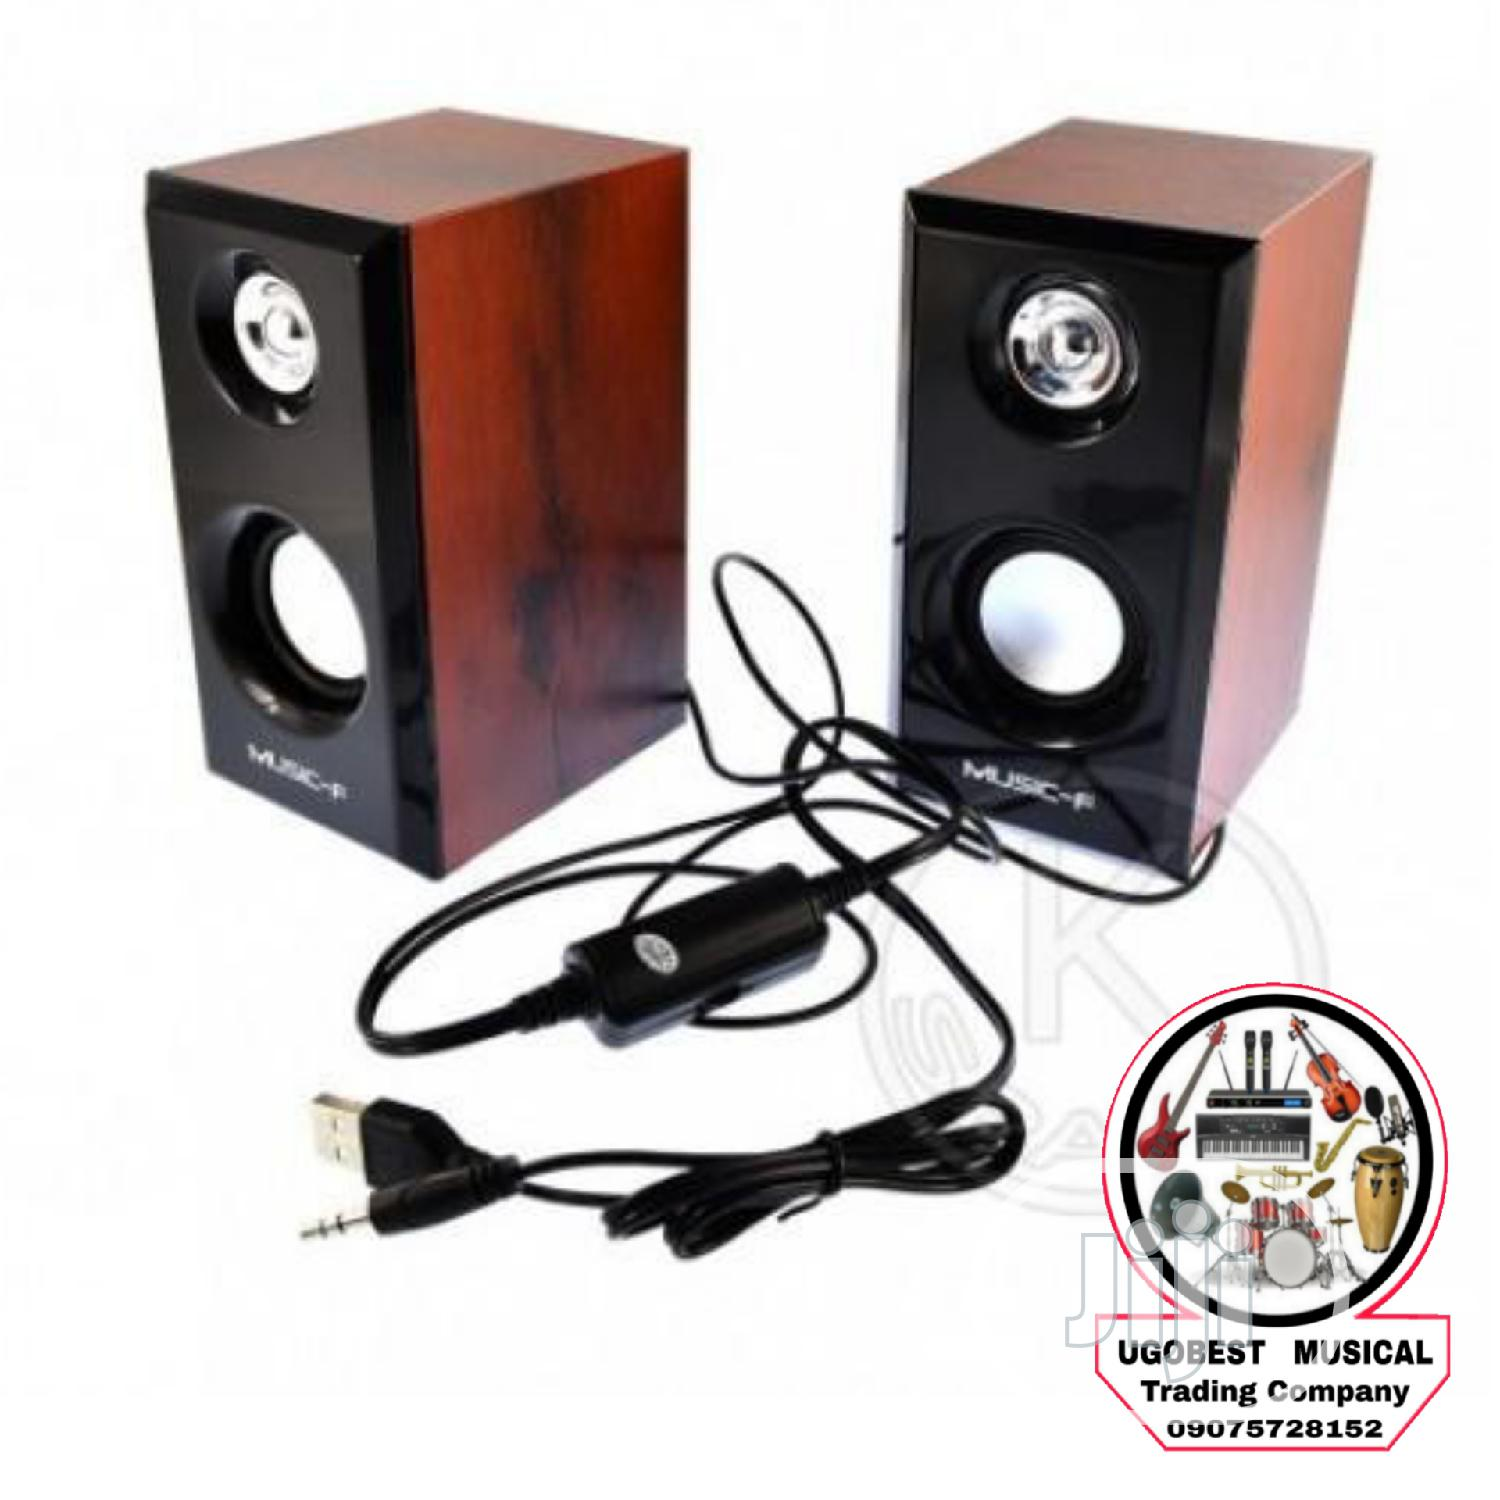 High Quality USB Speaker for PC, LAPTOP, PHONE | Audio & Music Equipment for sale in Mushin, Lagos State, Nigeria